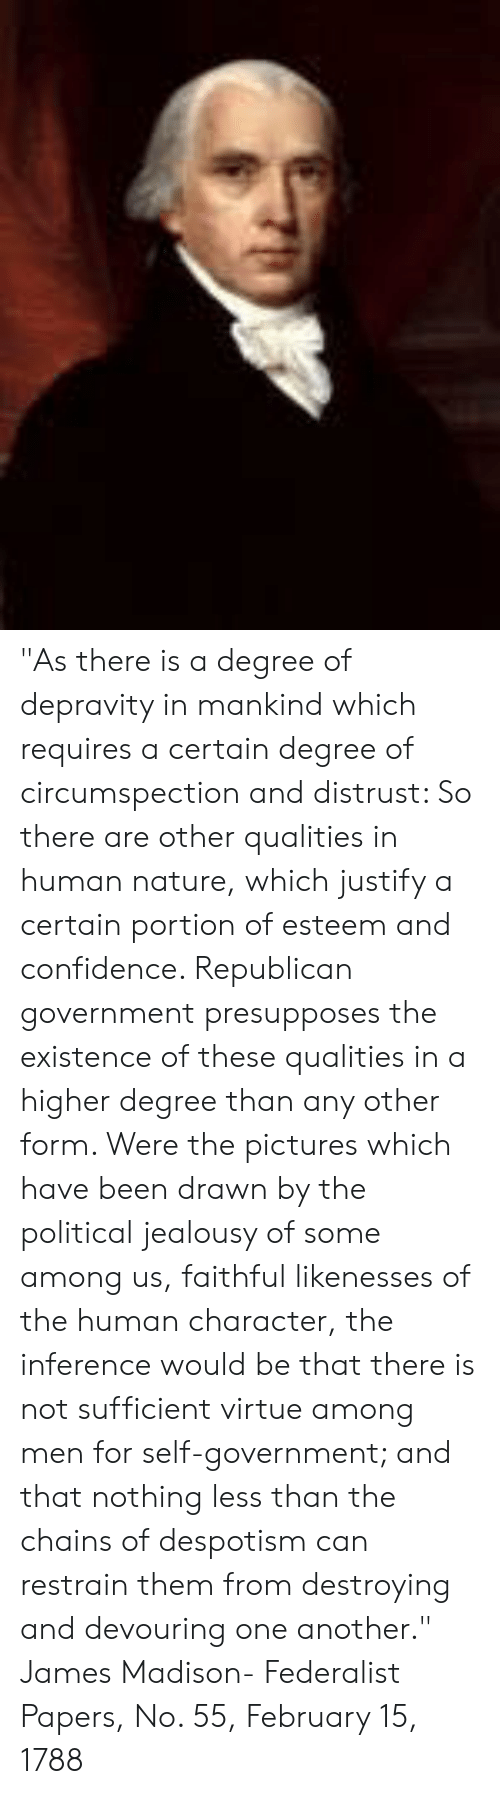 """despotism: """"As there is a degree of depravity in mankind which requires a certain degree of circumspection and distrust: So there are other qualities in human nature, which justify a certain portion of esteem and confidence. Republican government presupposes the existence of these qualities in a higher degree than any other form. Were the pictures which have been drawn by the political jealousy of some among us, faithful likenesses of the human character, the inference would be that there is not sufficient virtue among men for self-government; and that nothing less than the chains of despotism can restrain them from destroying and devouring one another.""""   James Madison- Federalist Papers, No. 55, February 15, 1788"""